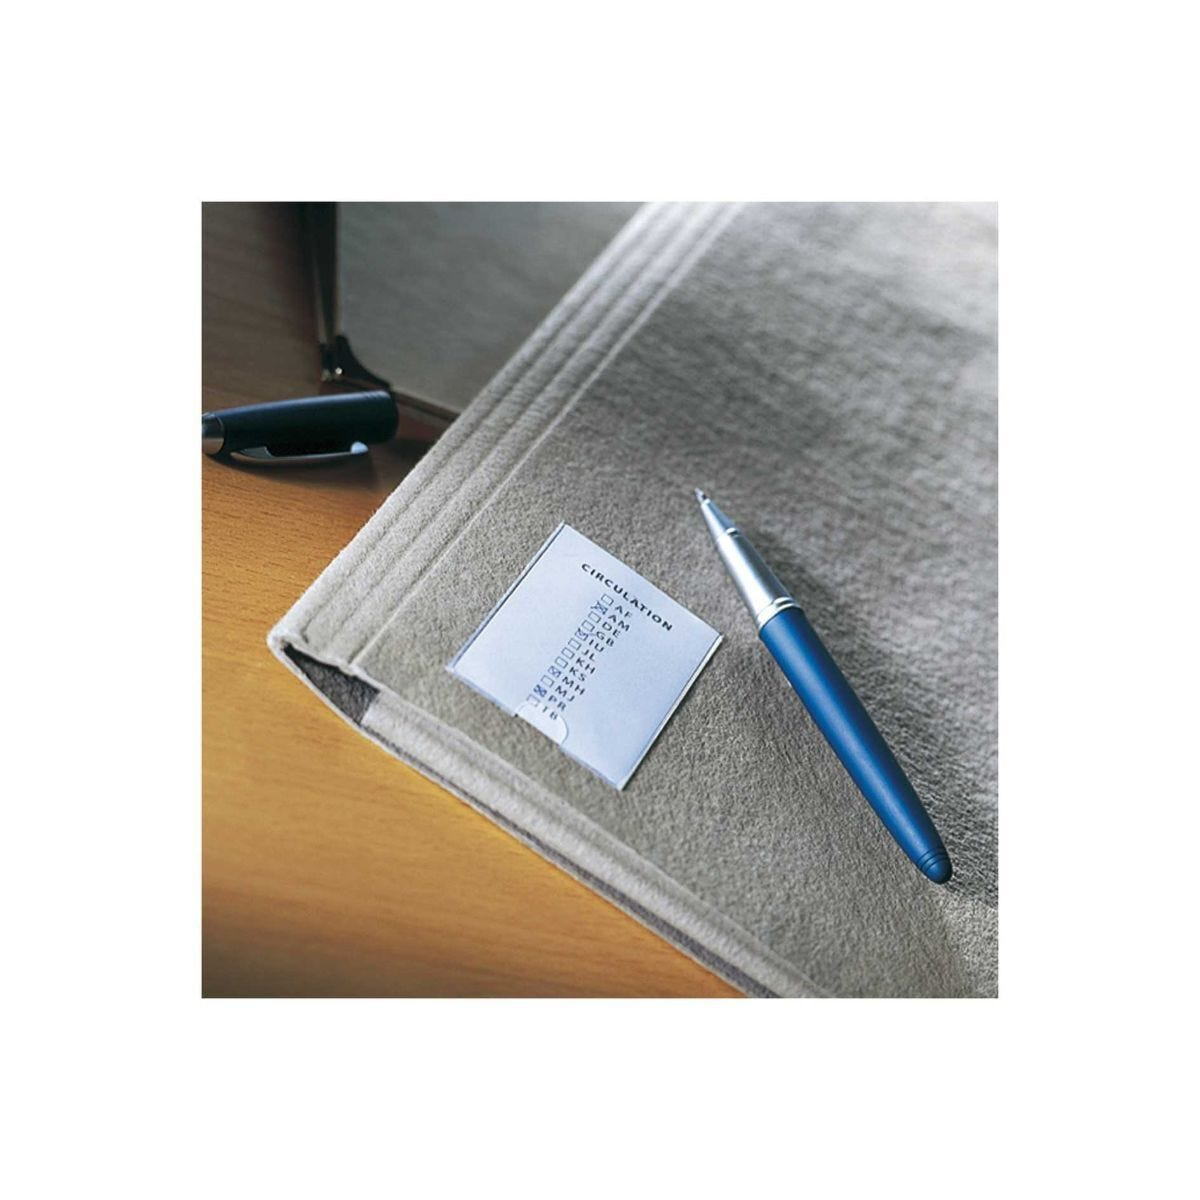 3L Self Adhesive Label Holders 55 x 102 Pack of 6